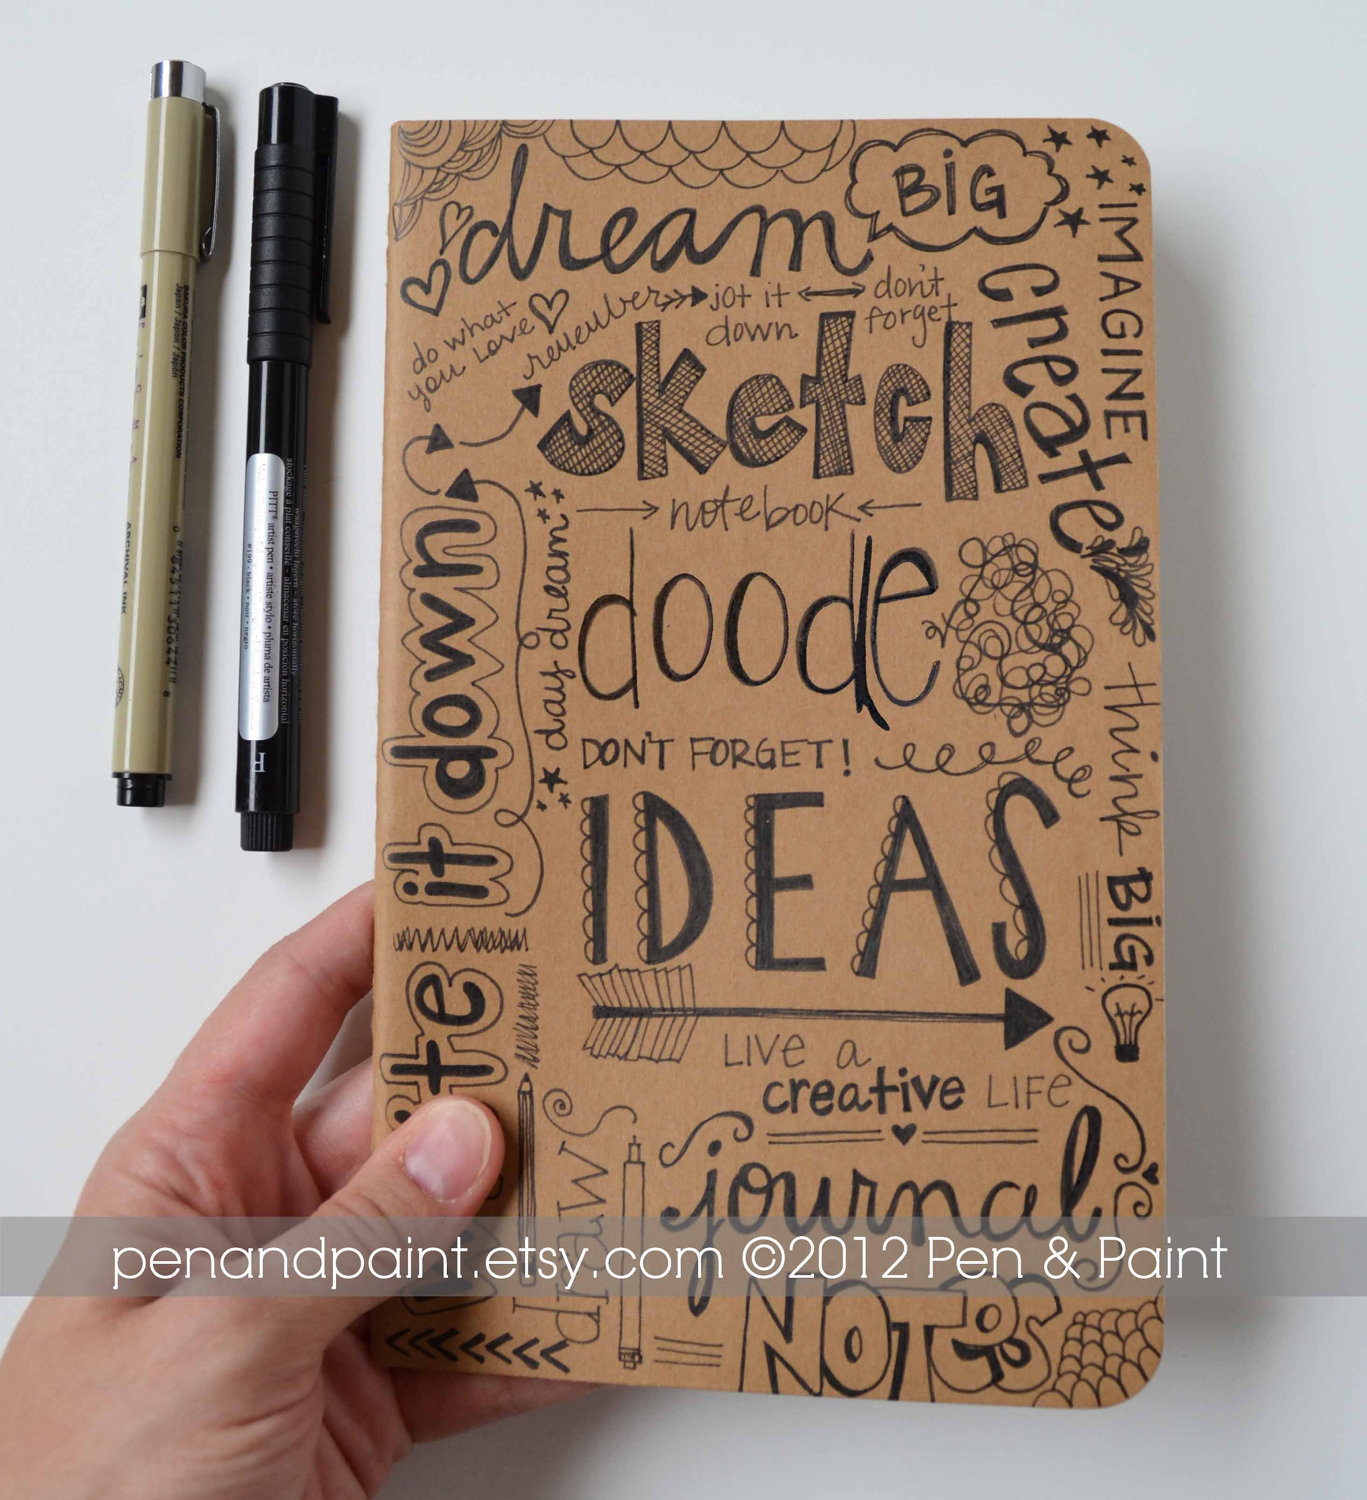 Drawn notebook hand drawn Covers notebook Google drawn Pinterest